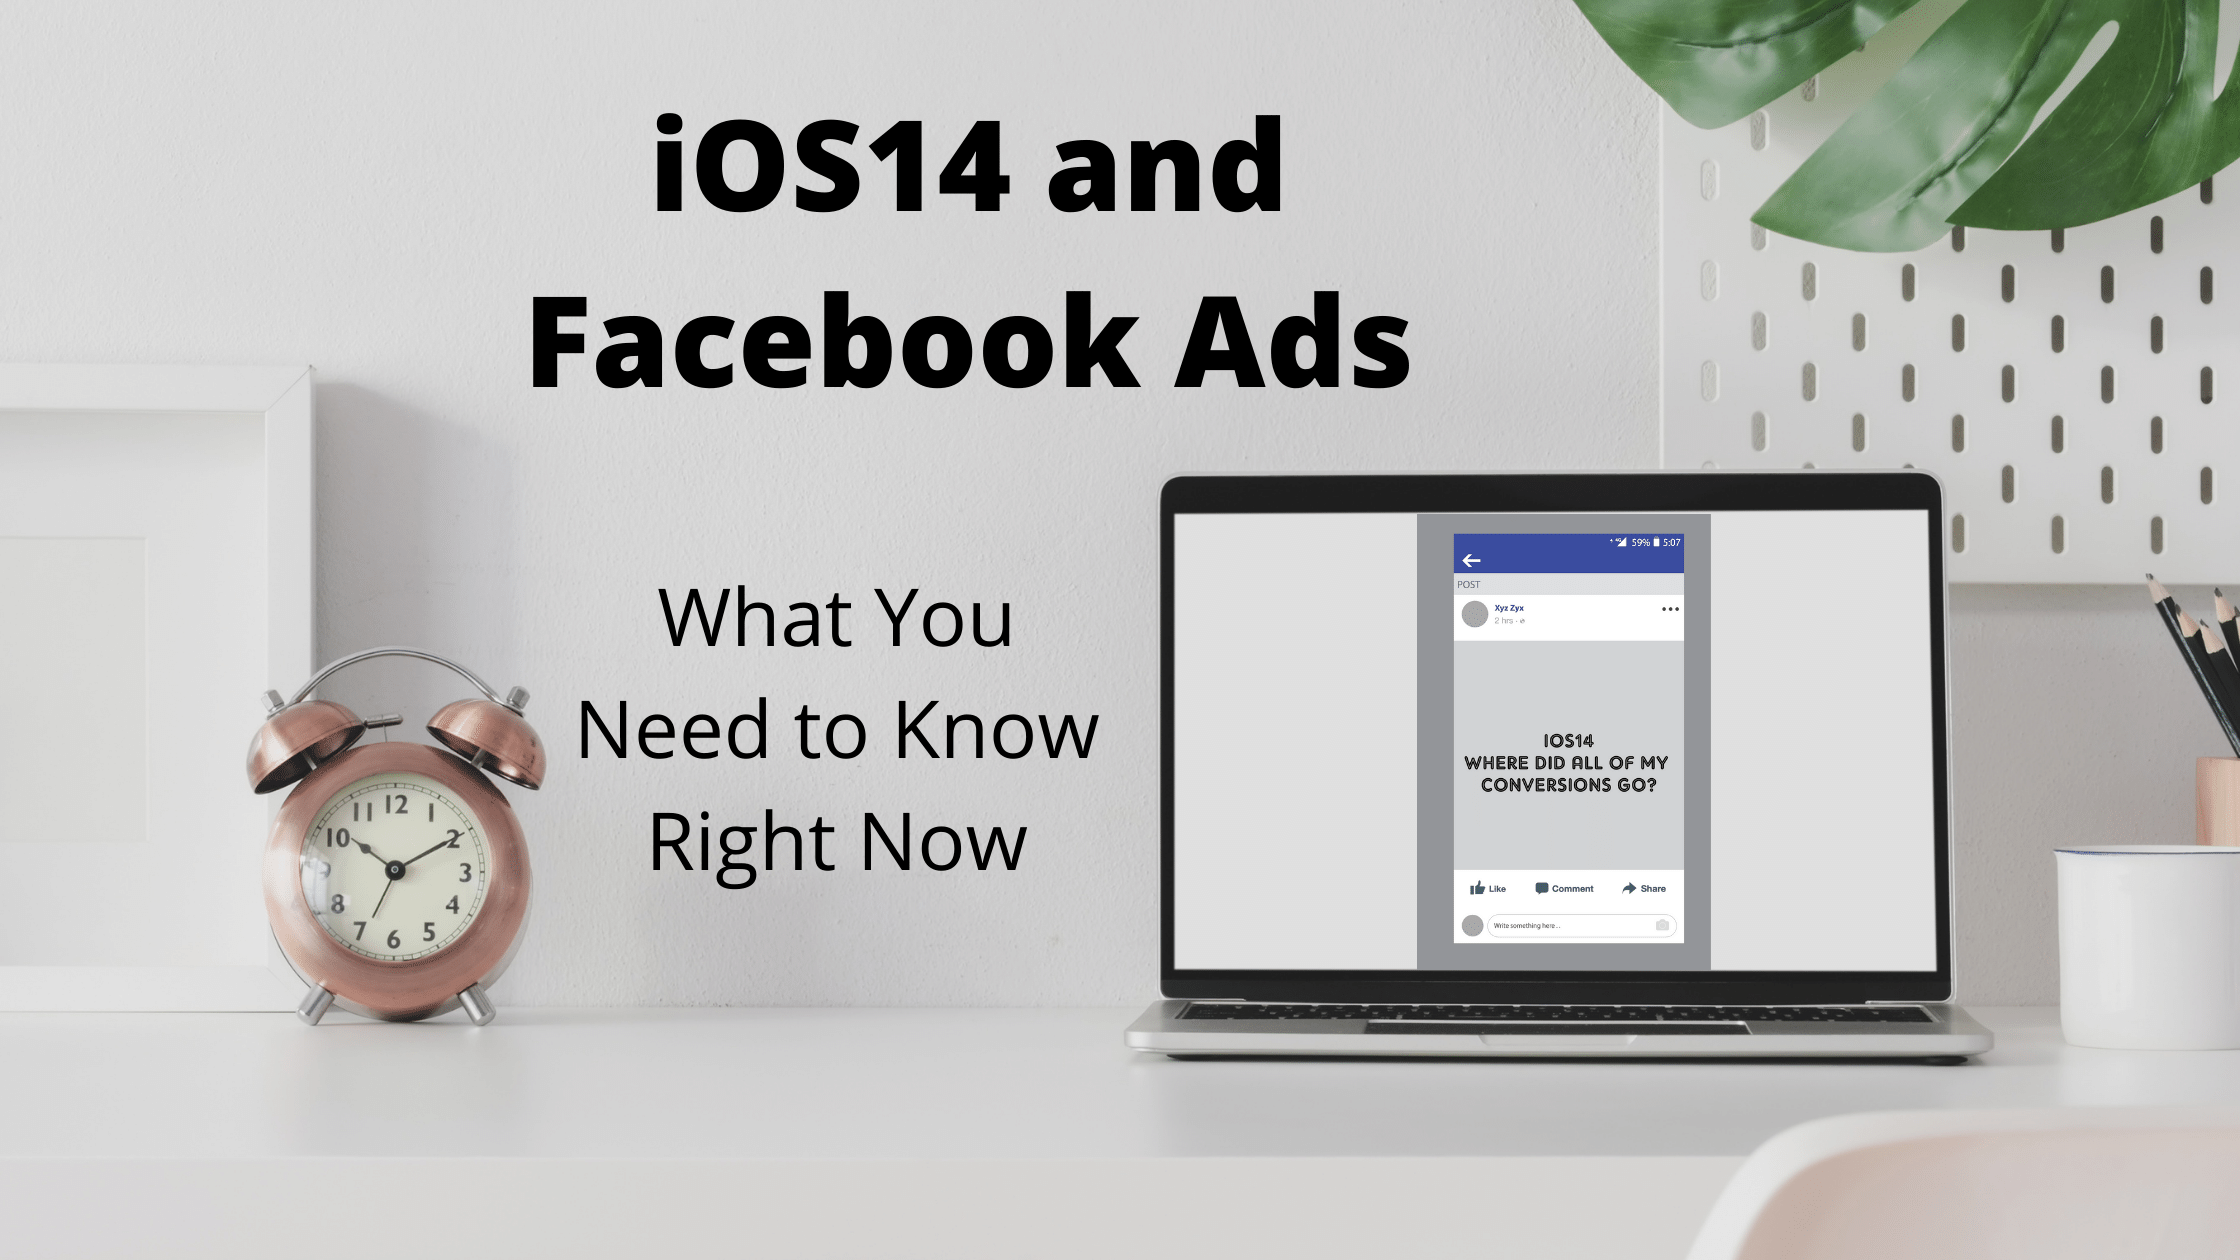 iOS14 and Facebook Ads - What You Need to Know Right Now